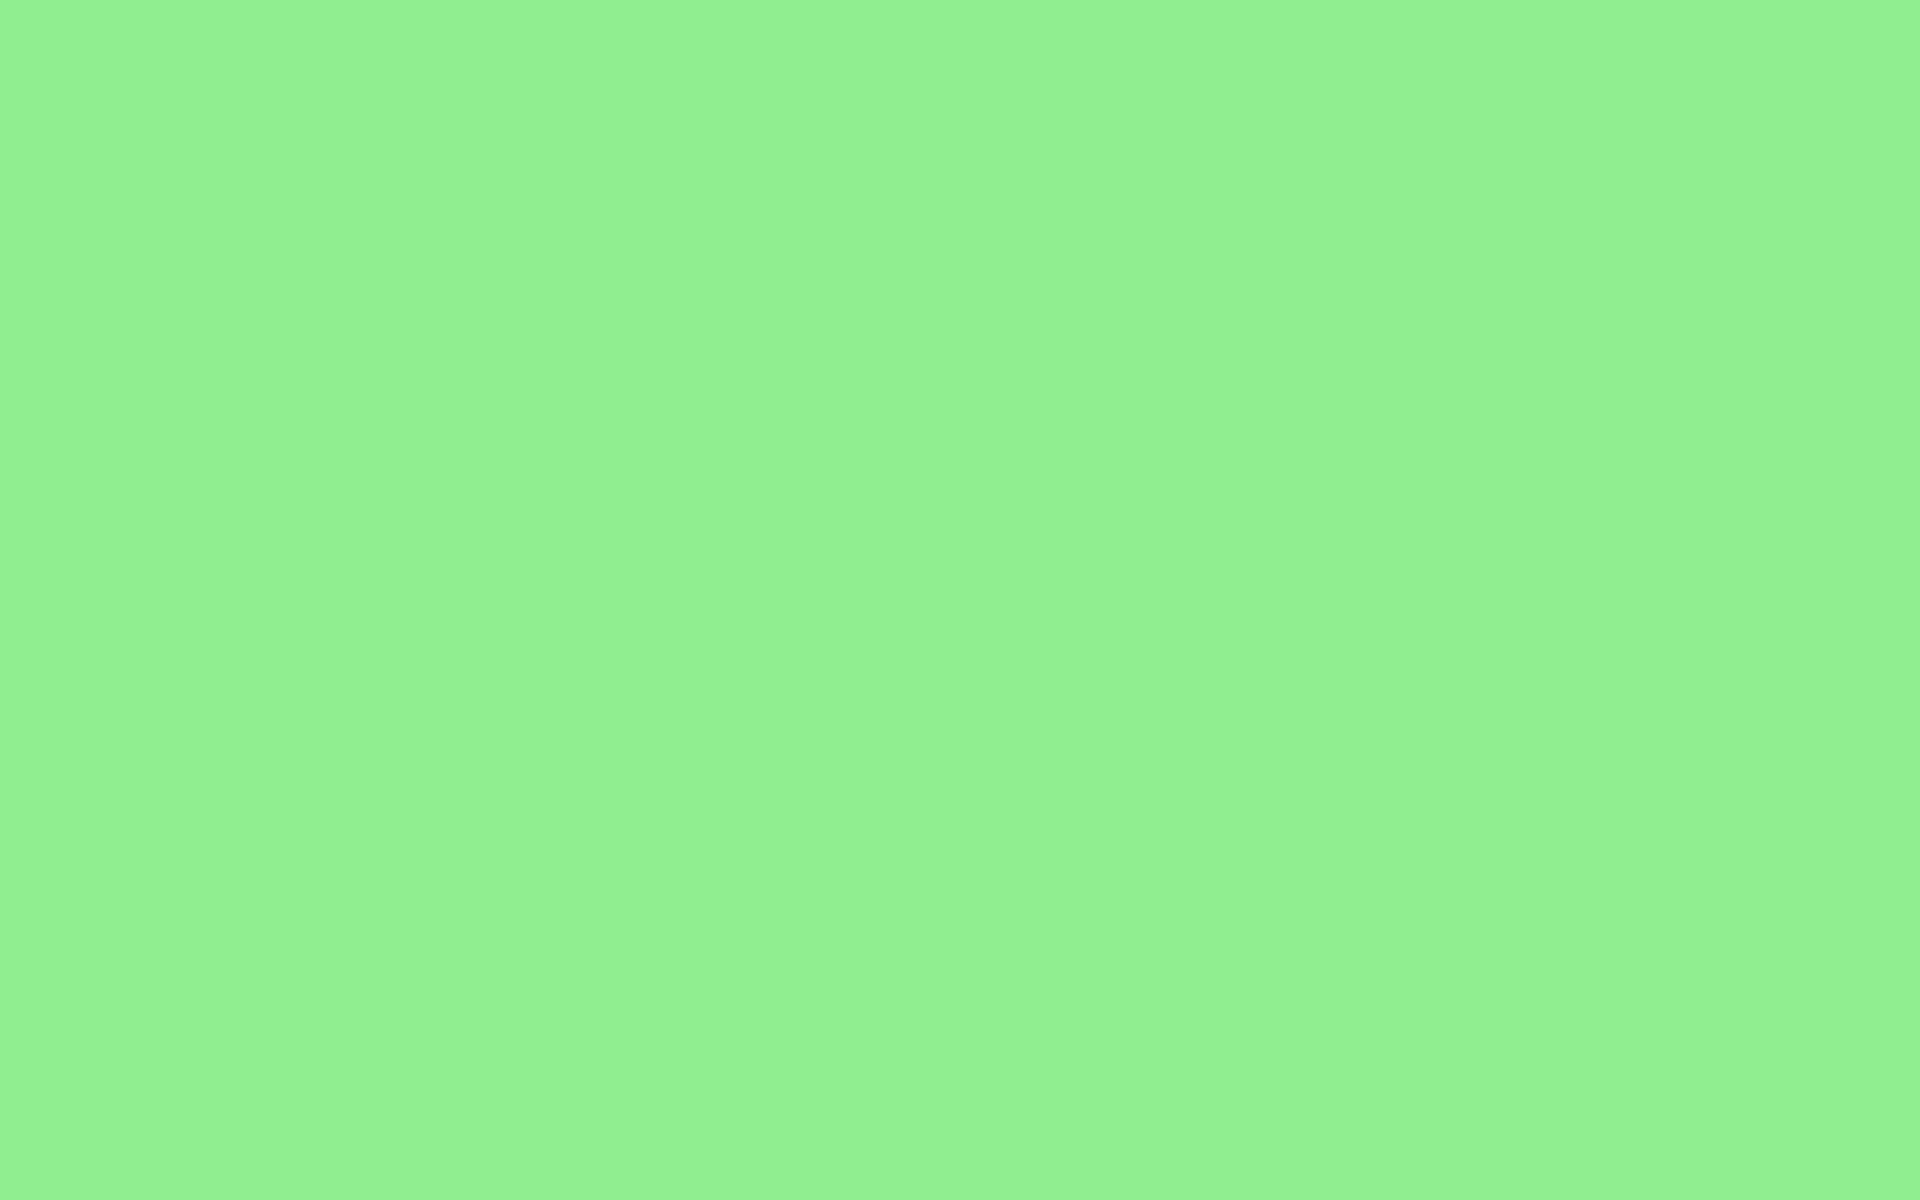 1920x1200 resolution Light Green solid color background view and 1920x1200